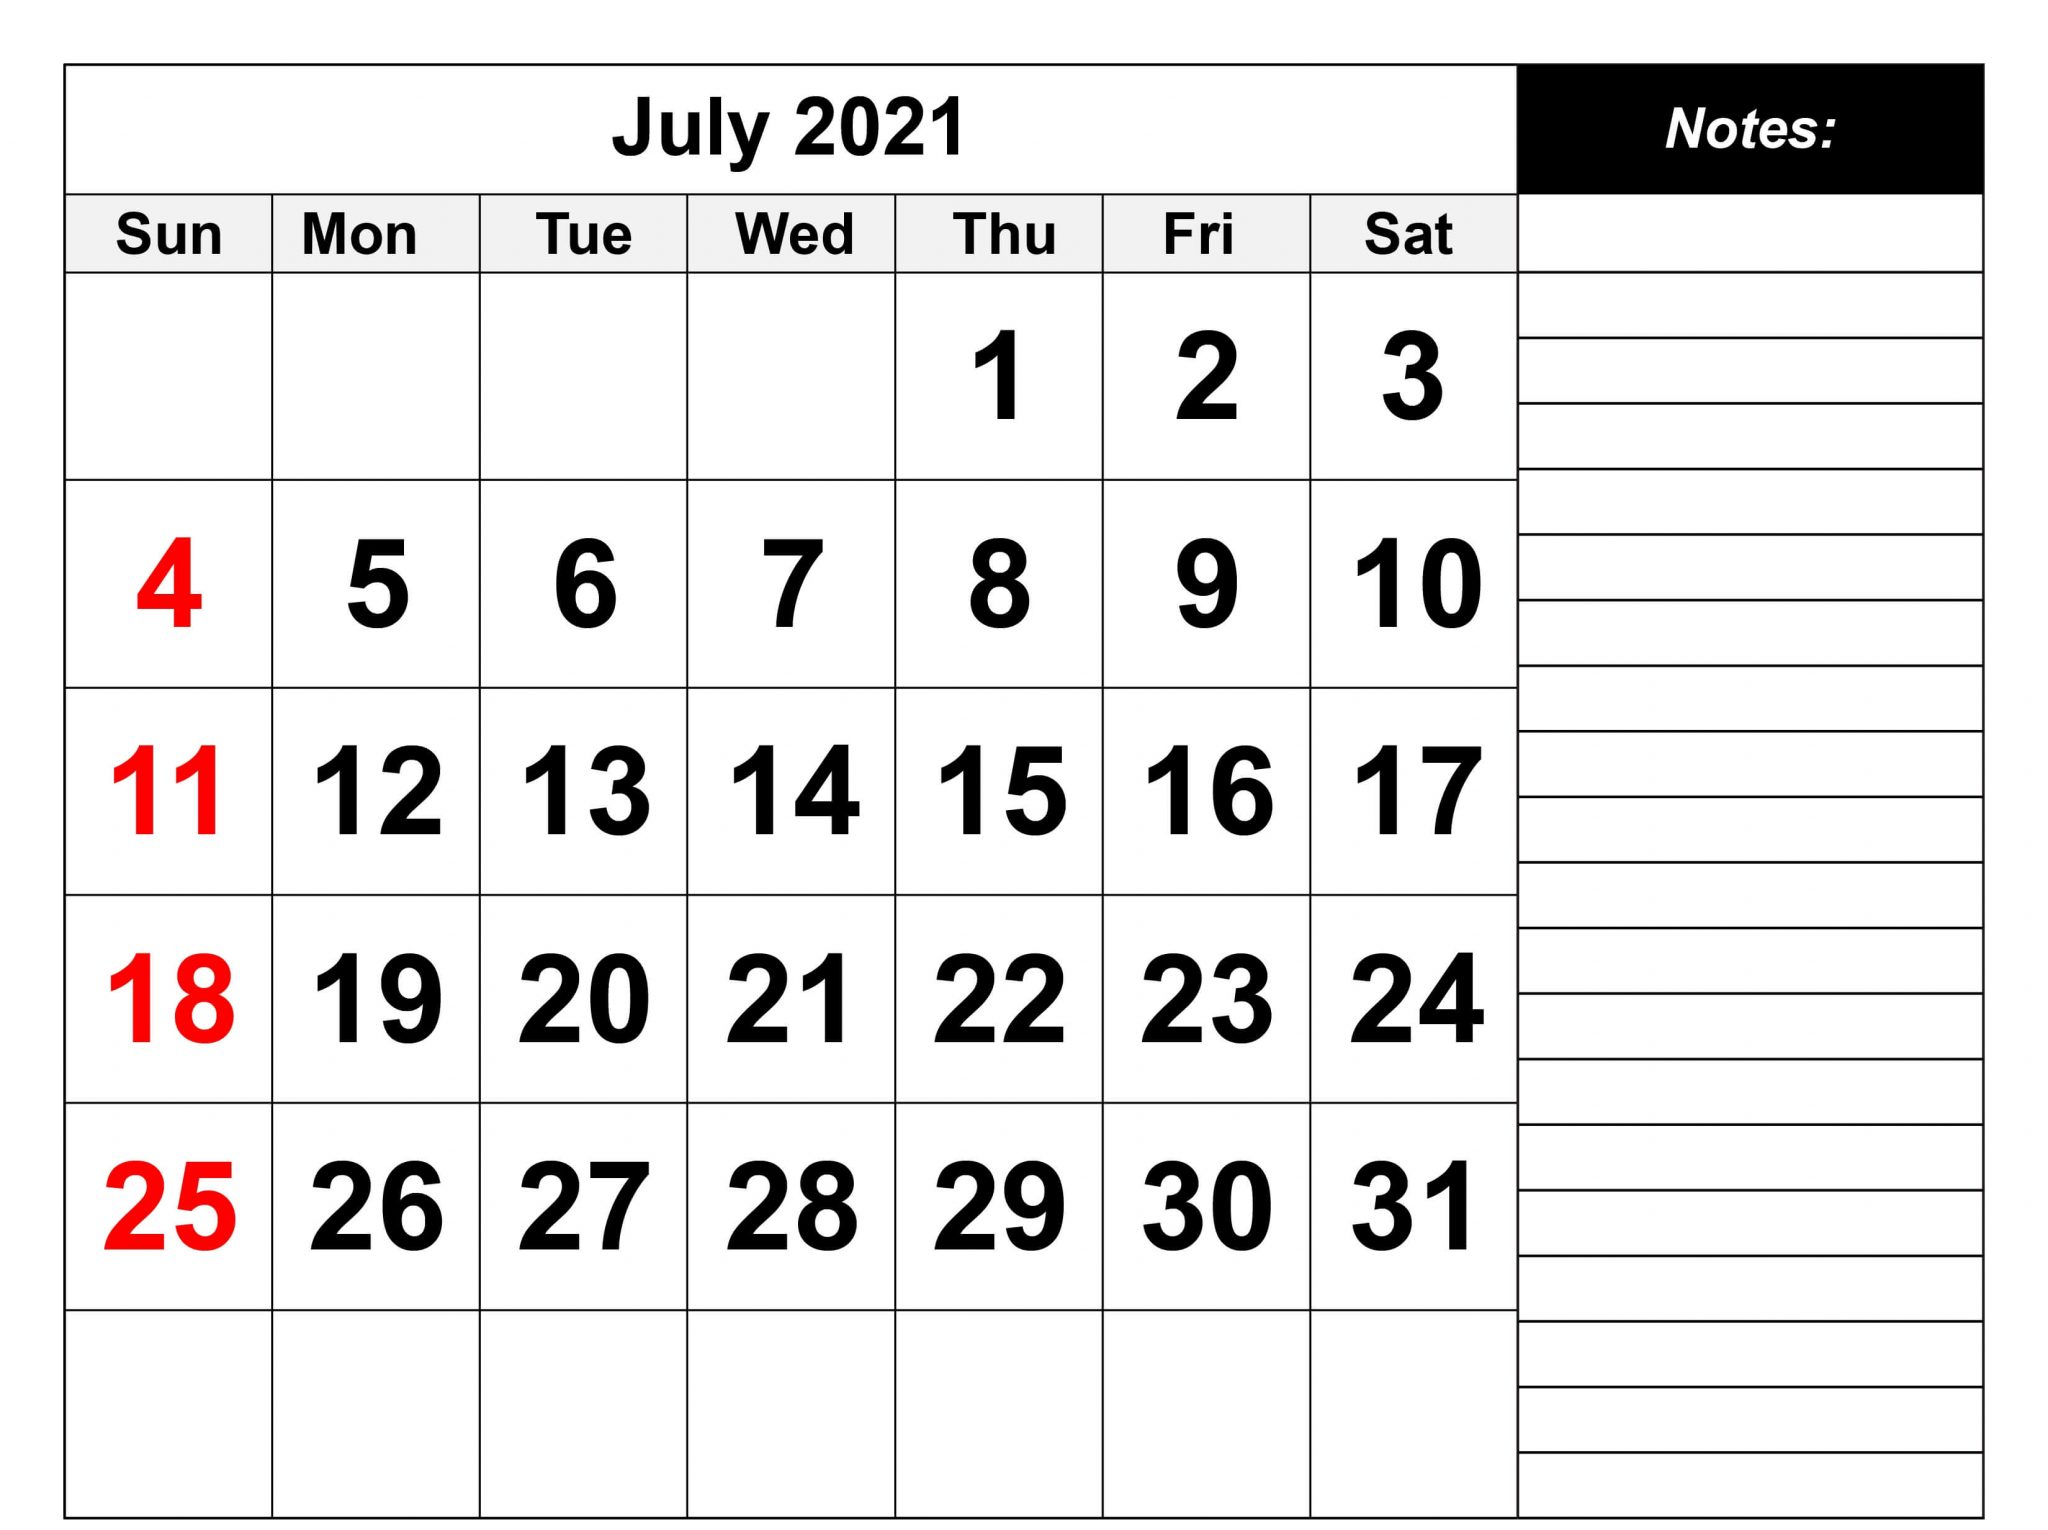 July 2021 Calendar for Personal Use